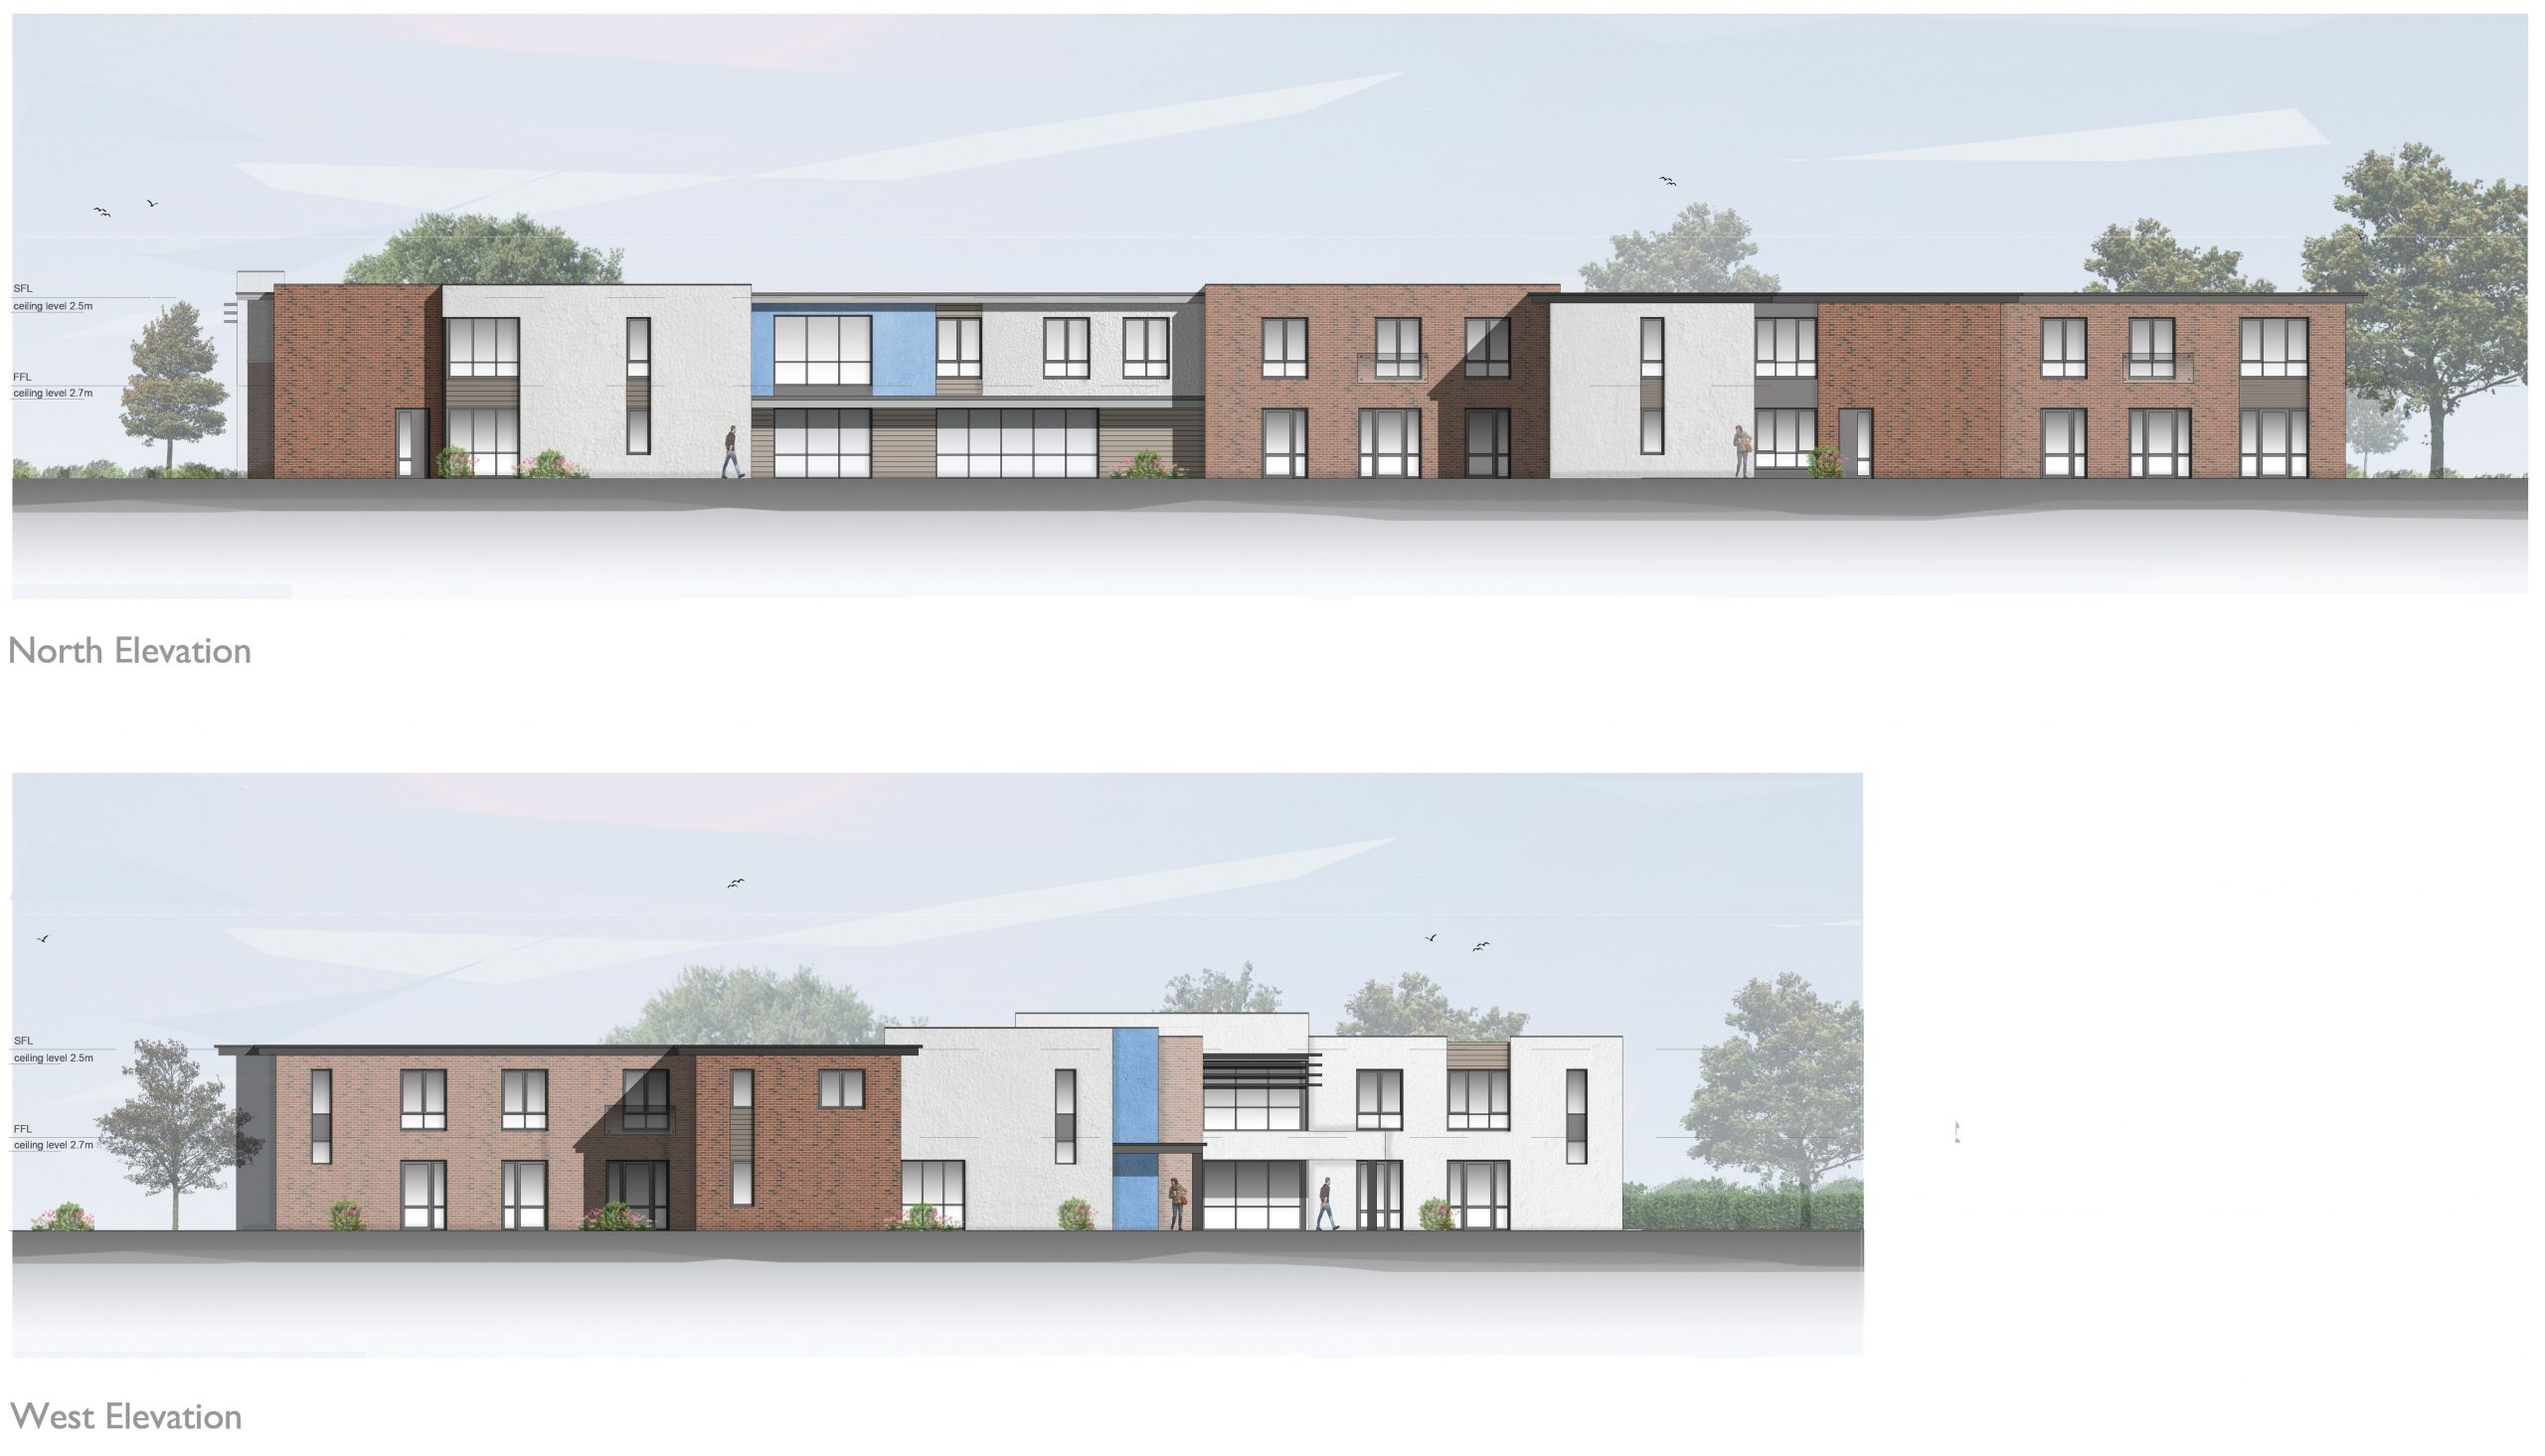 1526_F10_EL01_Proposed Elevations_Care Home_Rev A 29.05.19